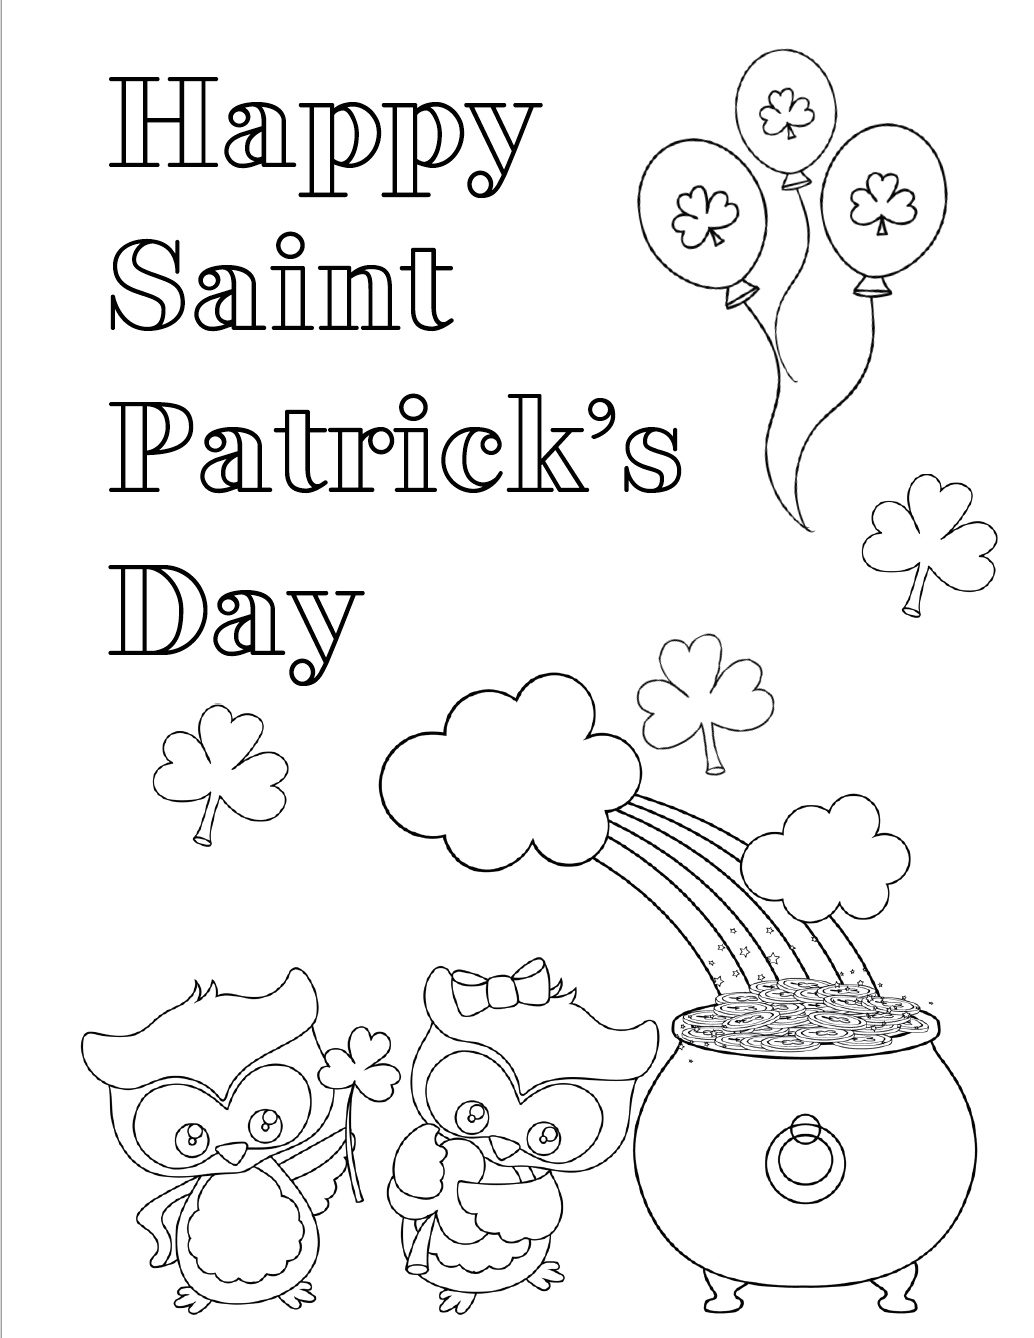 free printable st patricks day coloring pages